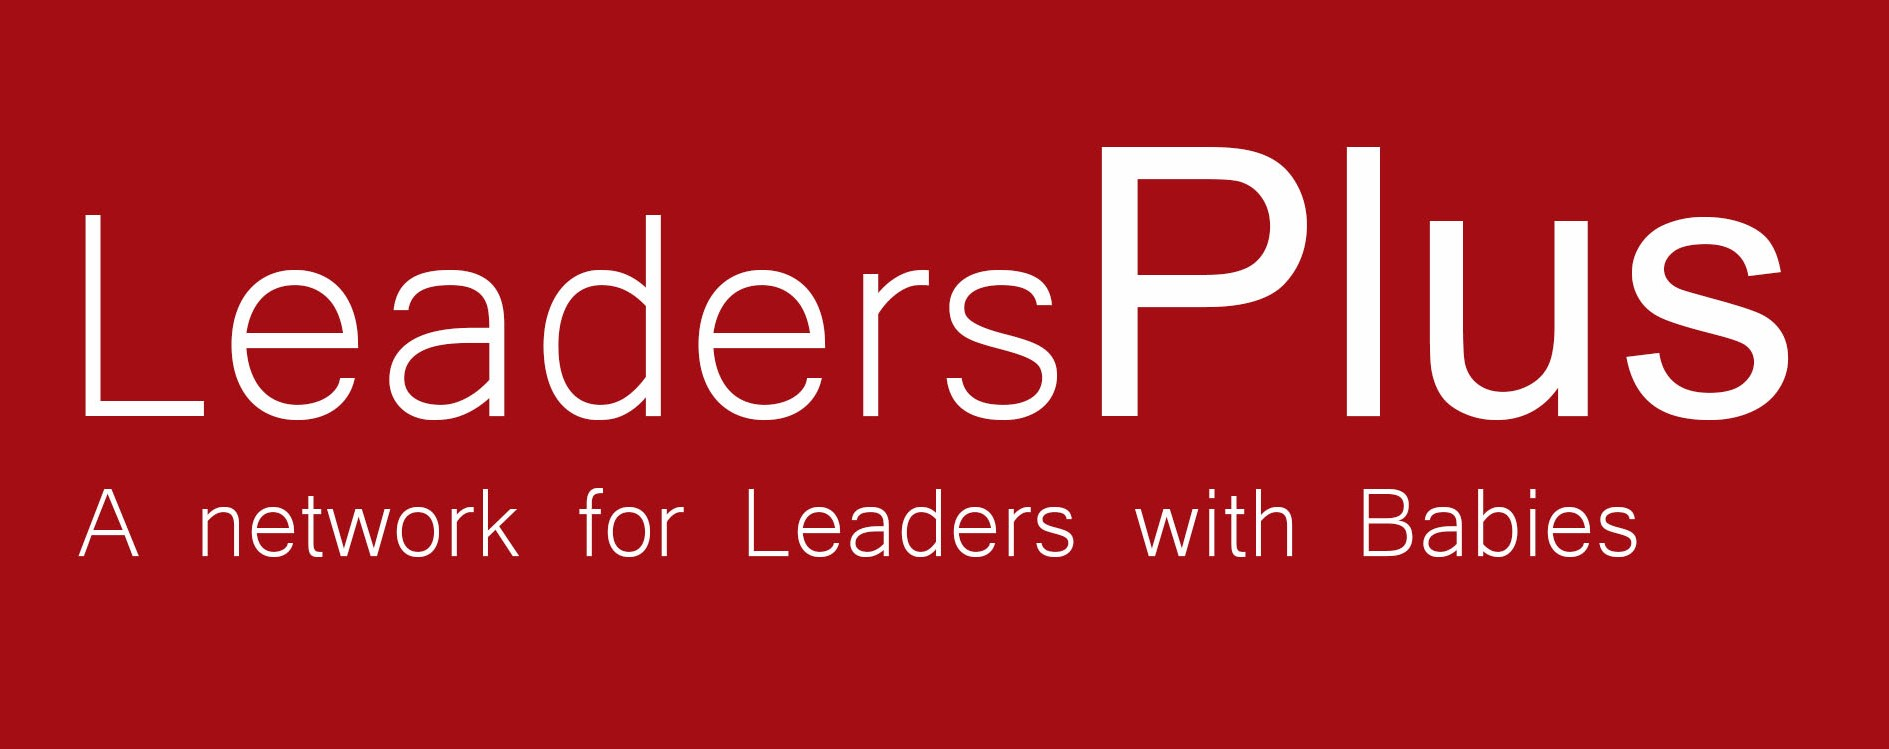 Leaders Plus